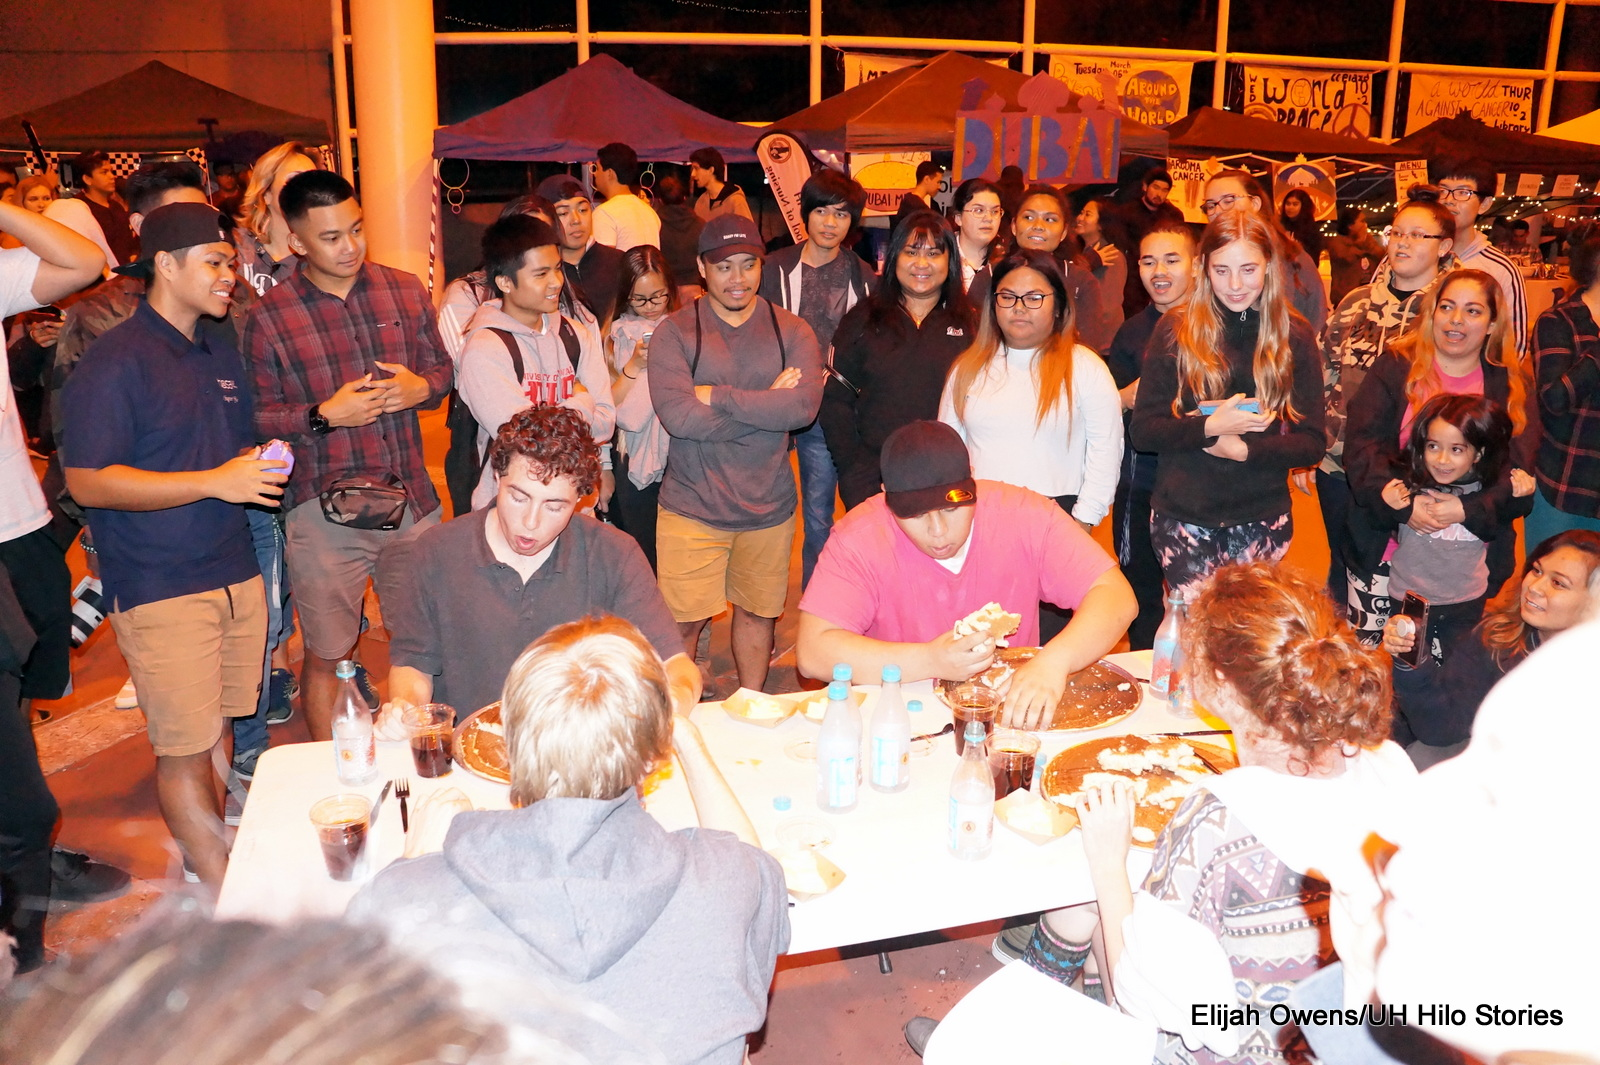 Eating contest, everyone gathered around to watch.